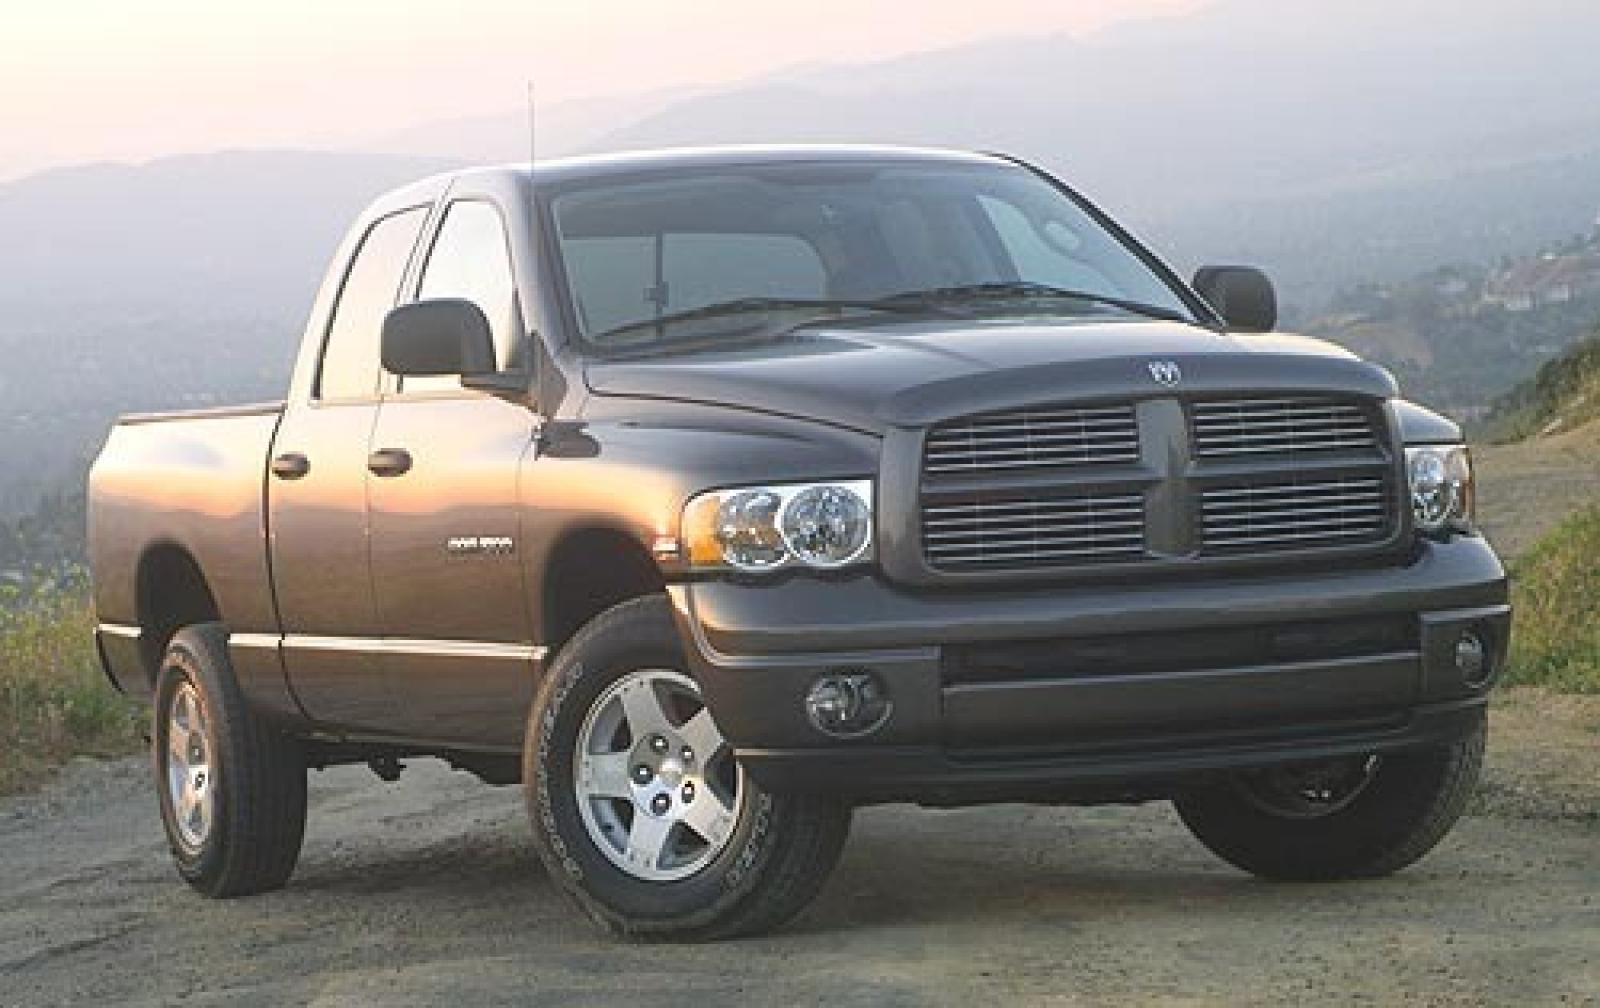 2005 dodge ram pickup 2500 information and photos zombiedrive. Black Bedroom Furniture Sets. Home Design Ideas